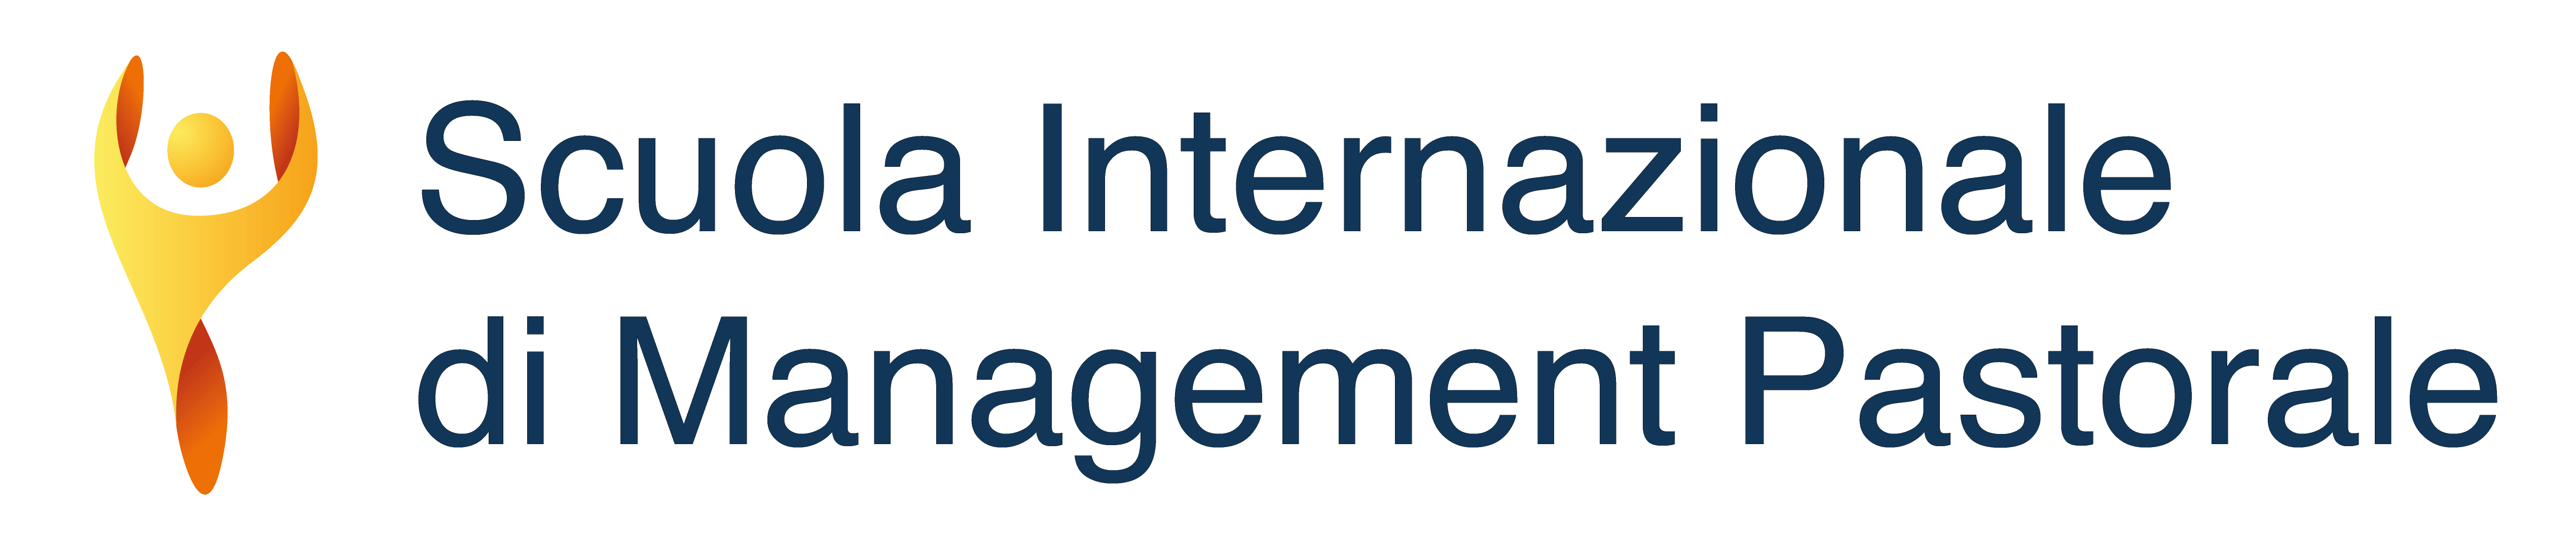 Scuola Internazionale di Management Pastorale